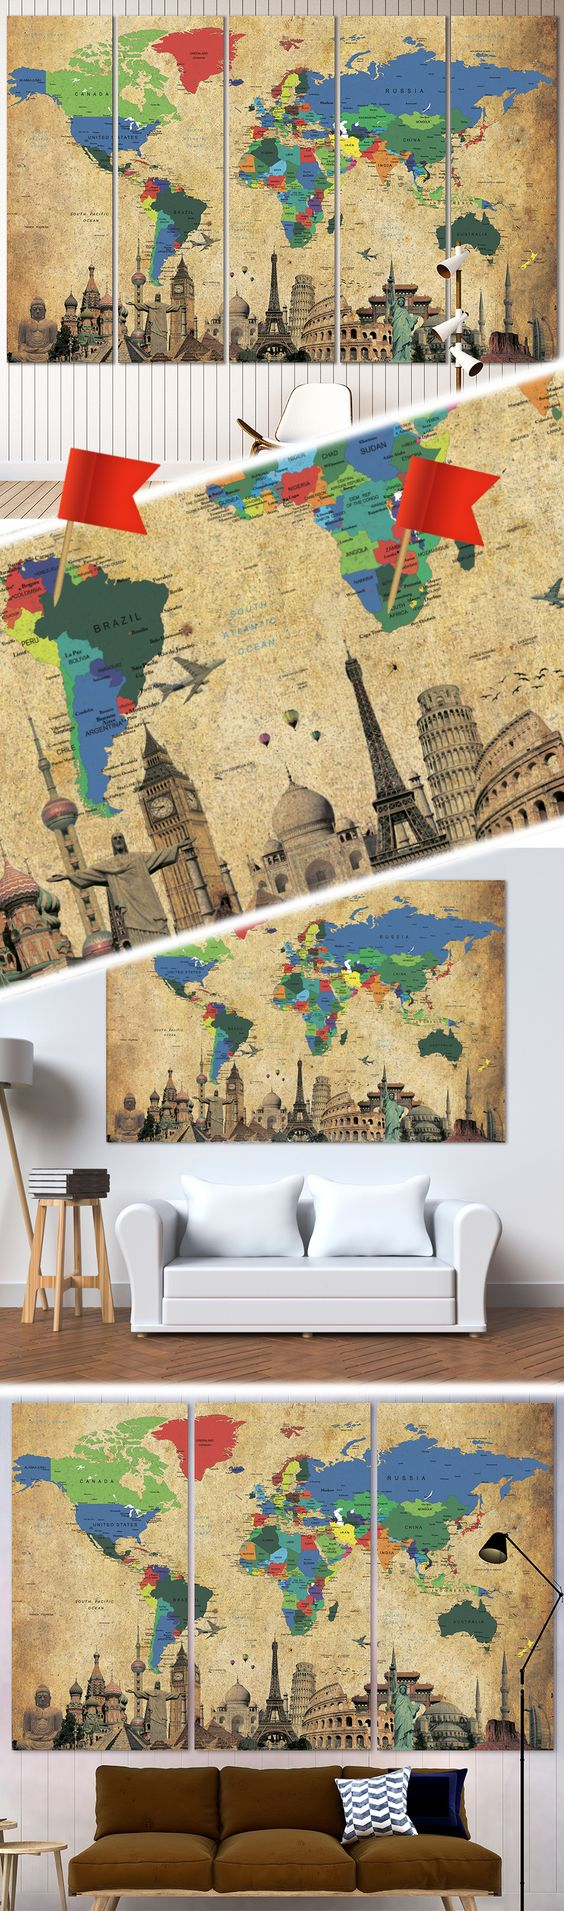 Brown World Map №3027 | Map canvas, Office walls and Wall decorations